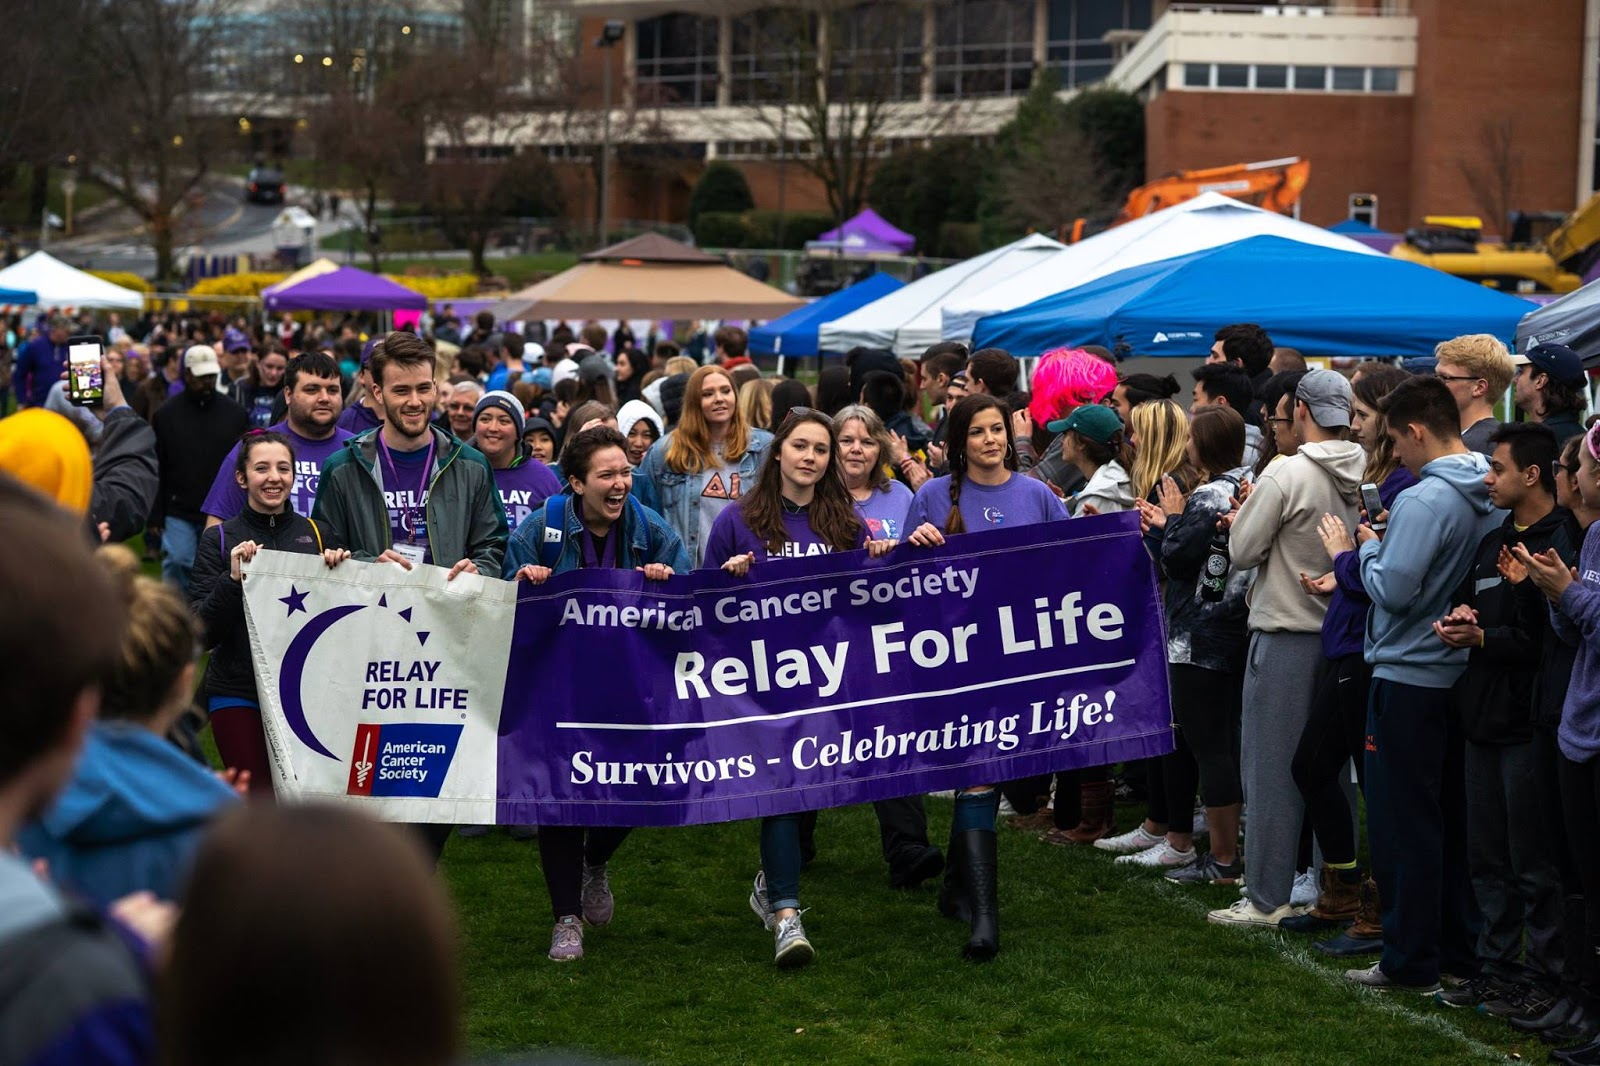 Survivor lap at jmu's relay for life